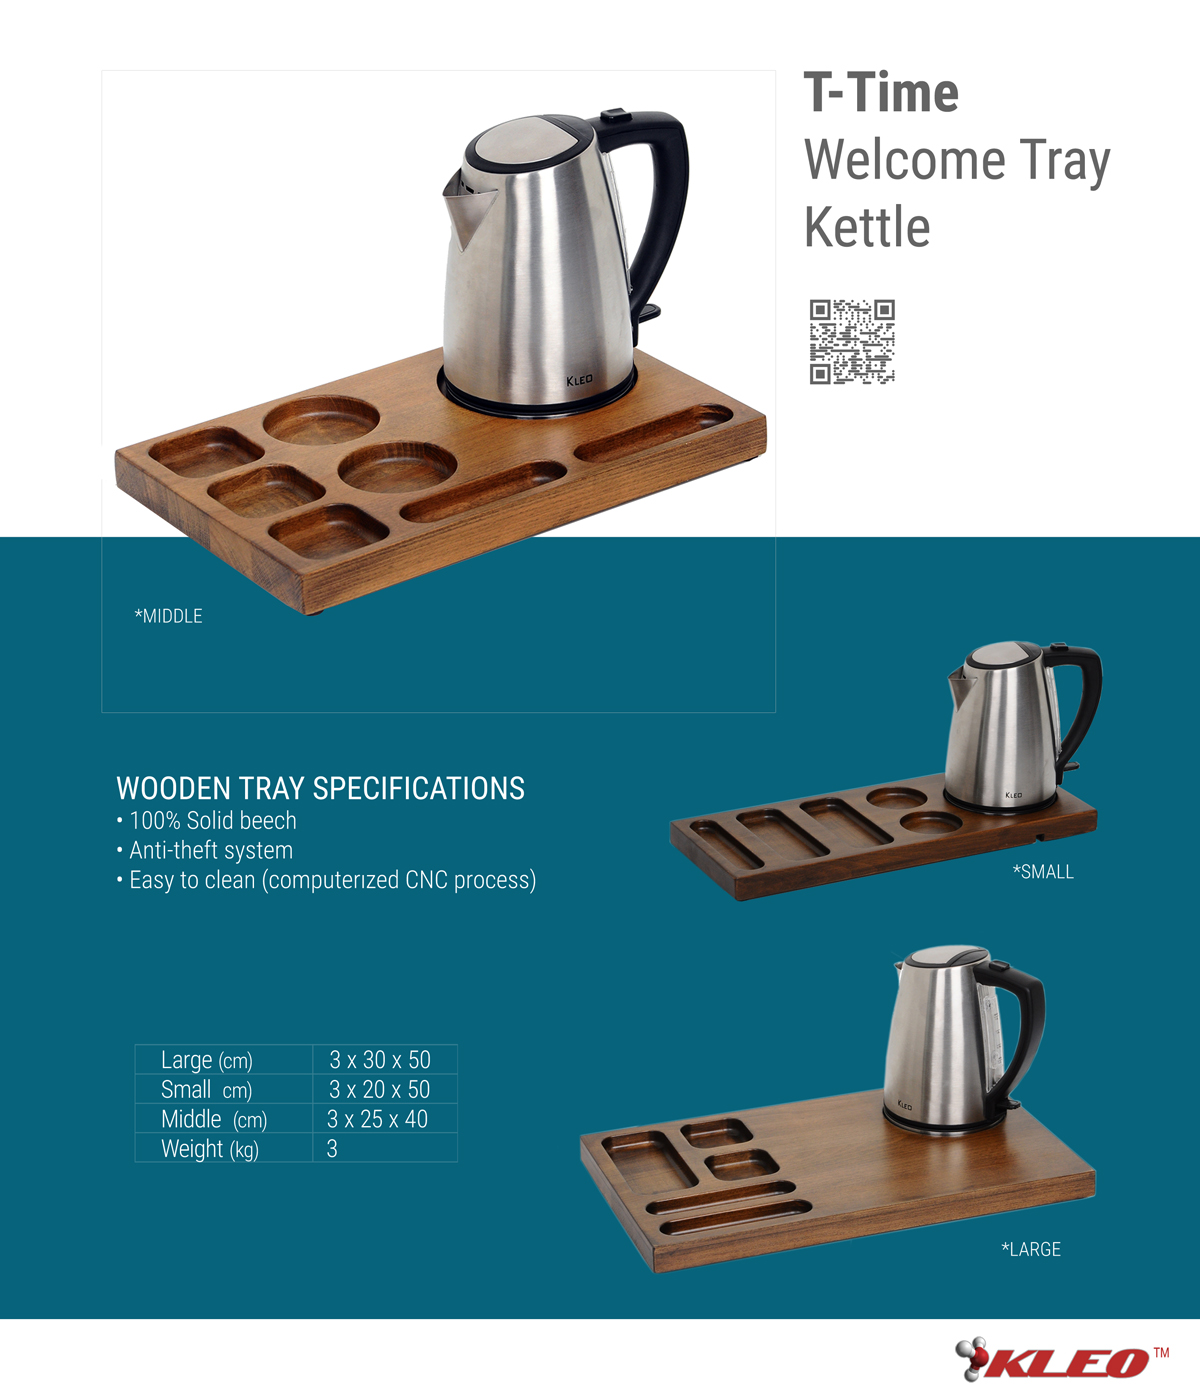 T-TIME WELCOME TRAY